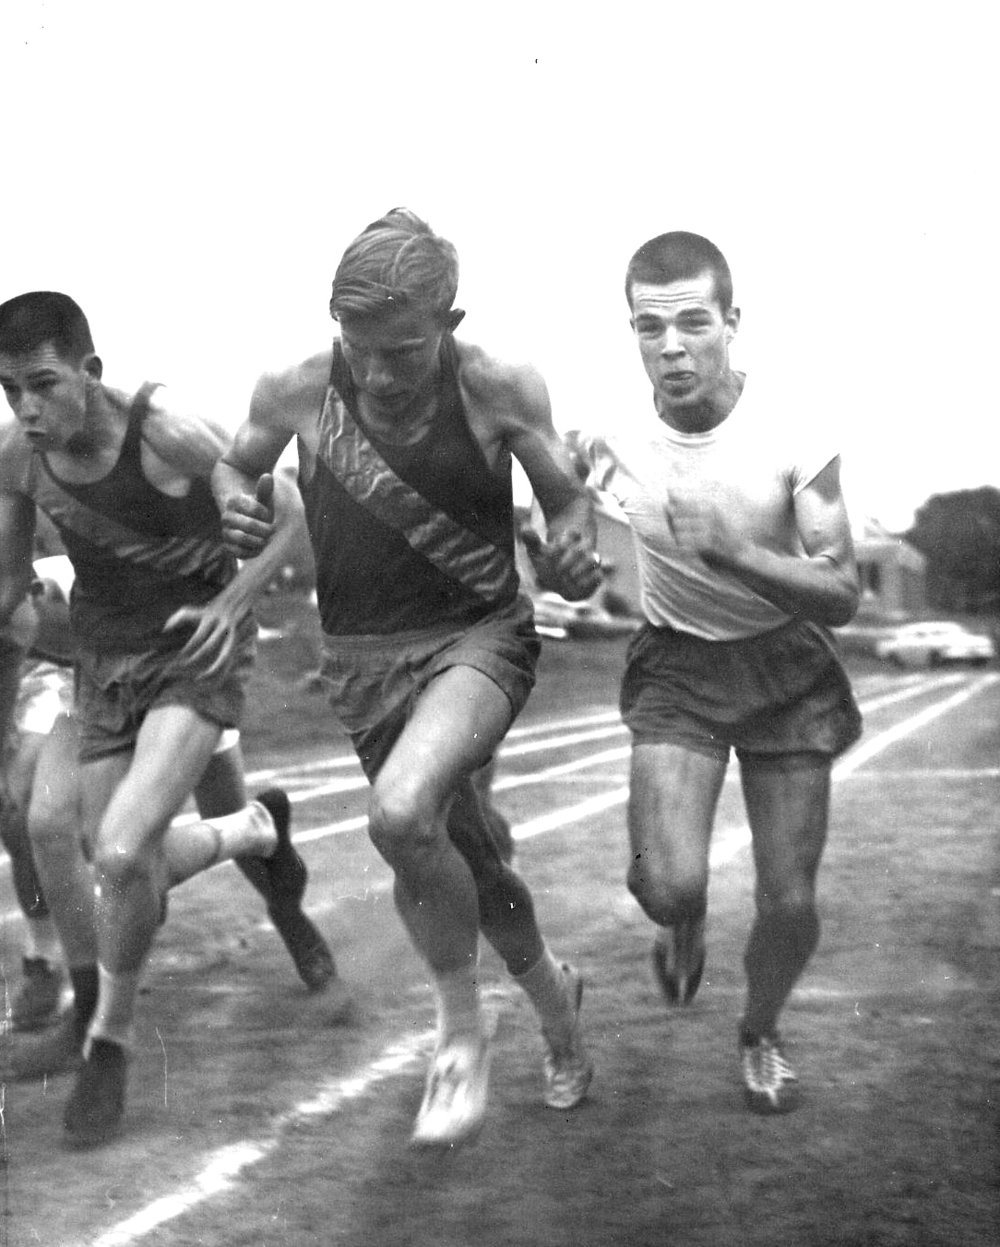 Willie Hudson (center of photo) and Ray Cawood (right)